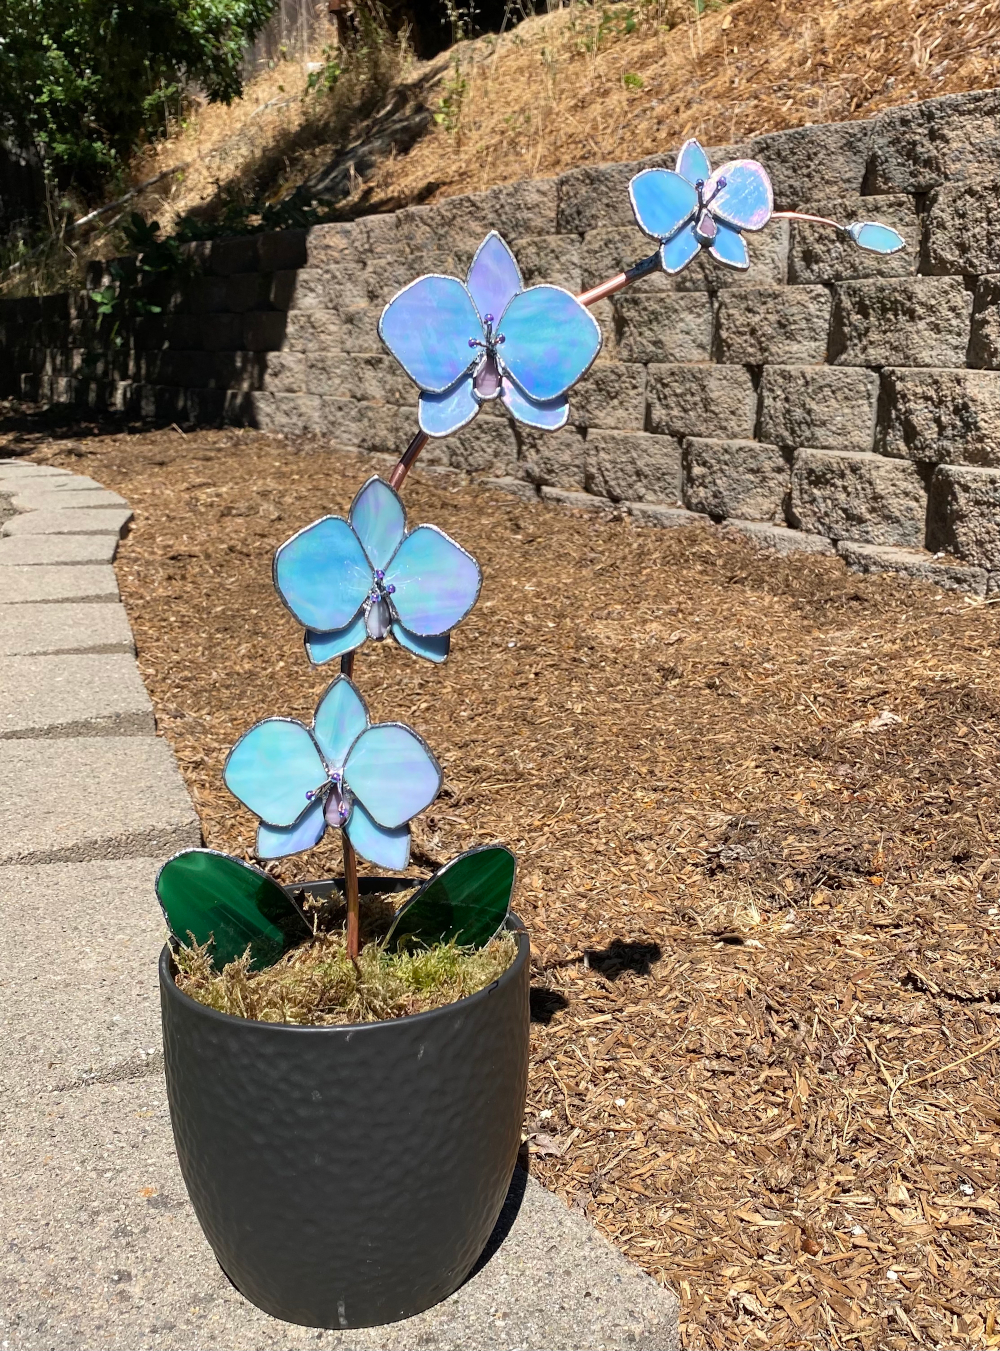 1st. Rayna Pitter, Stained glass orchids 1